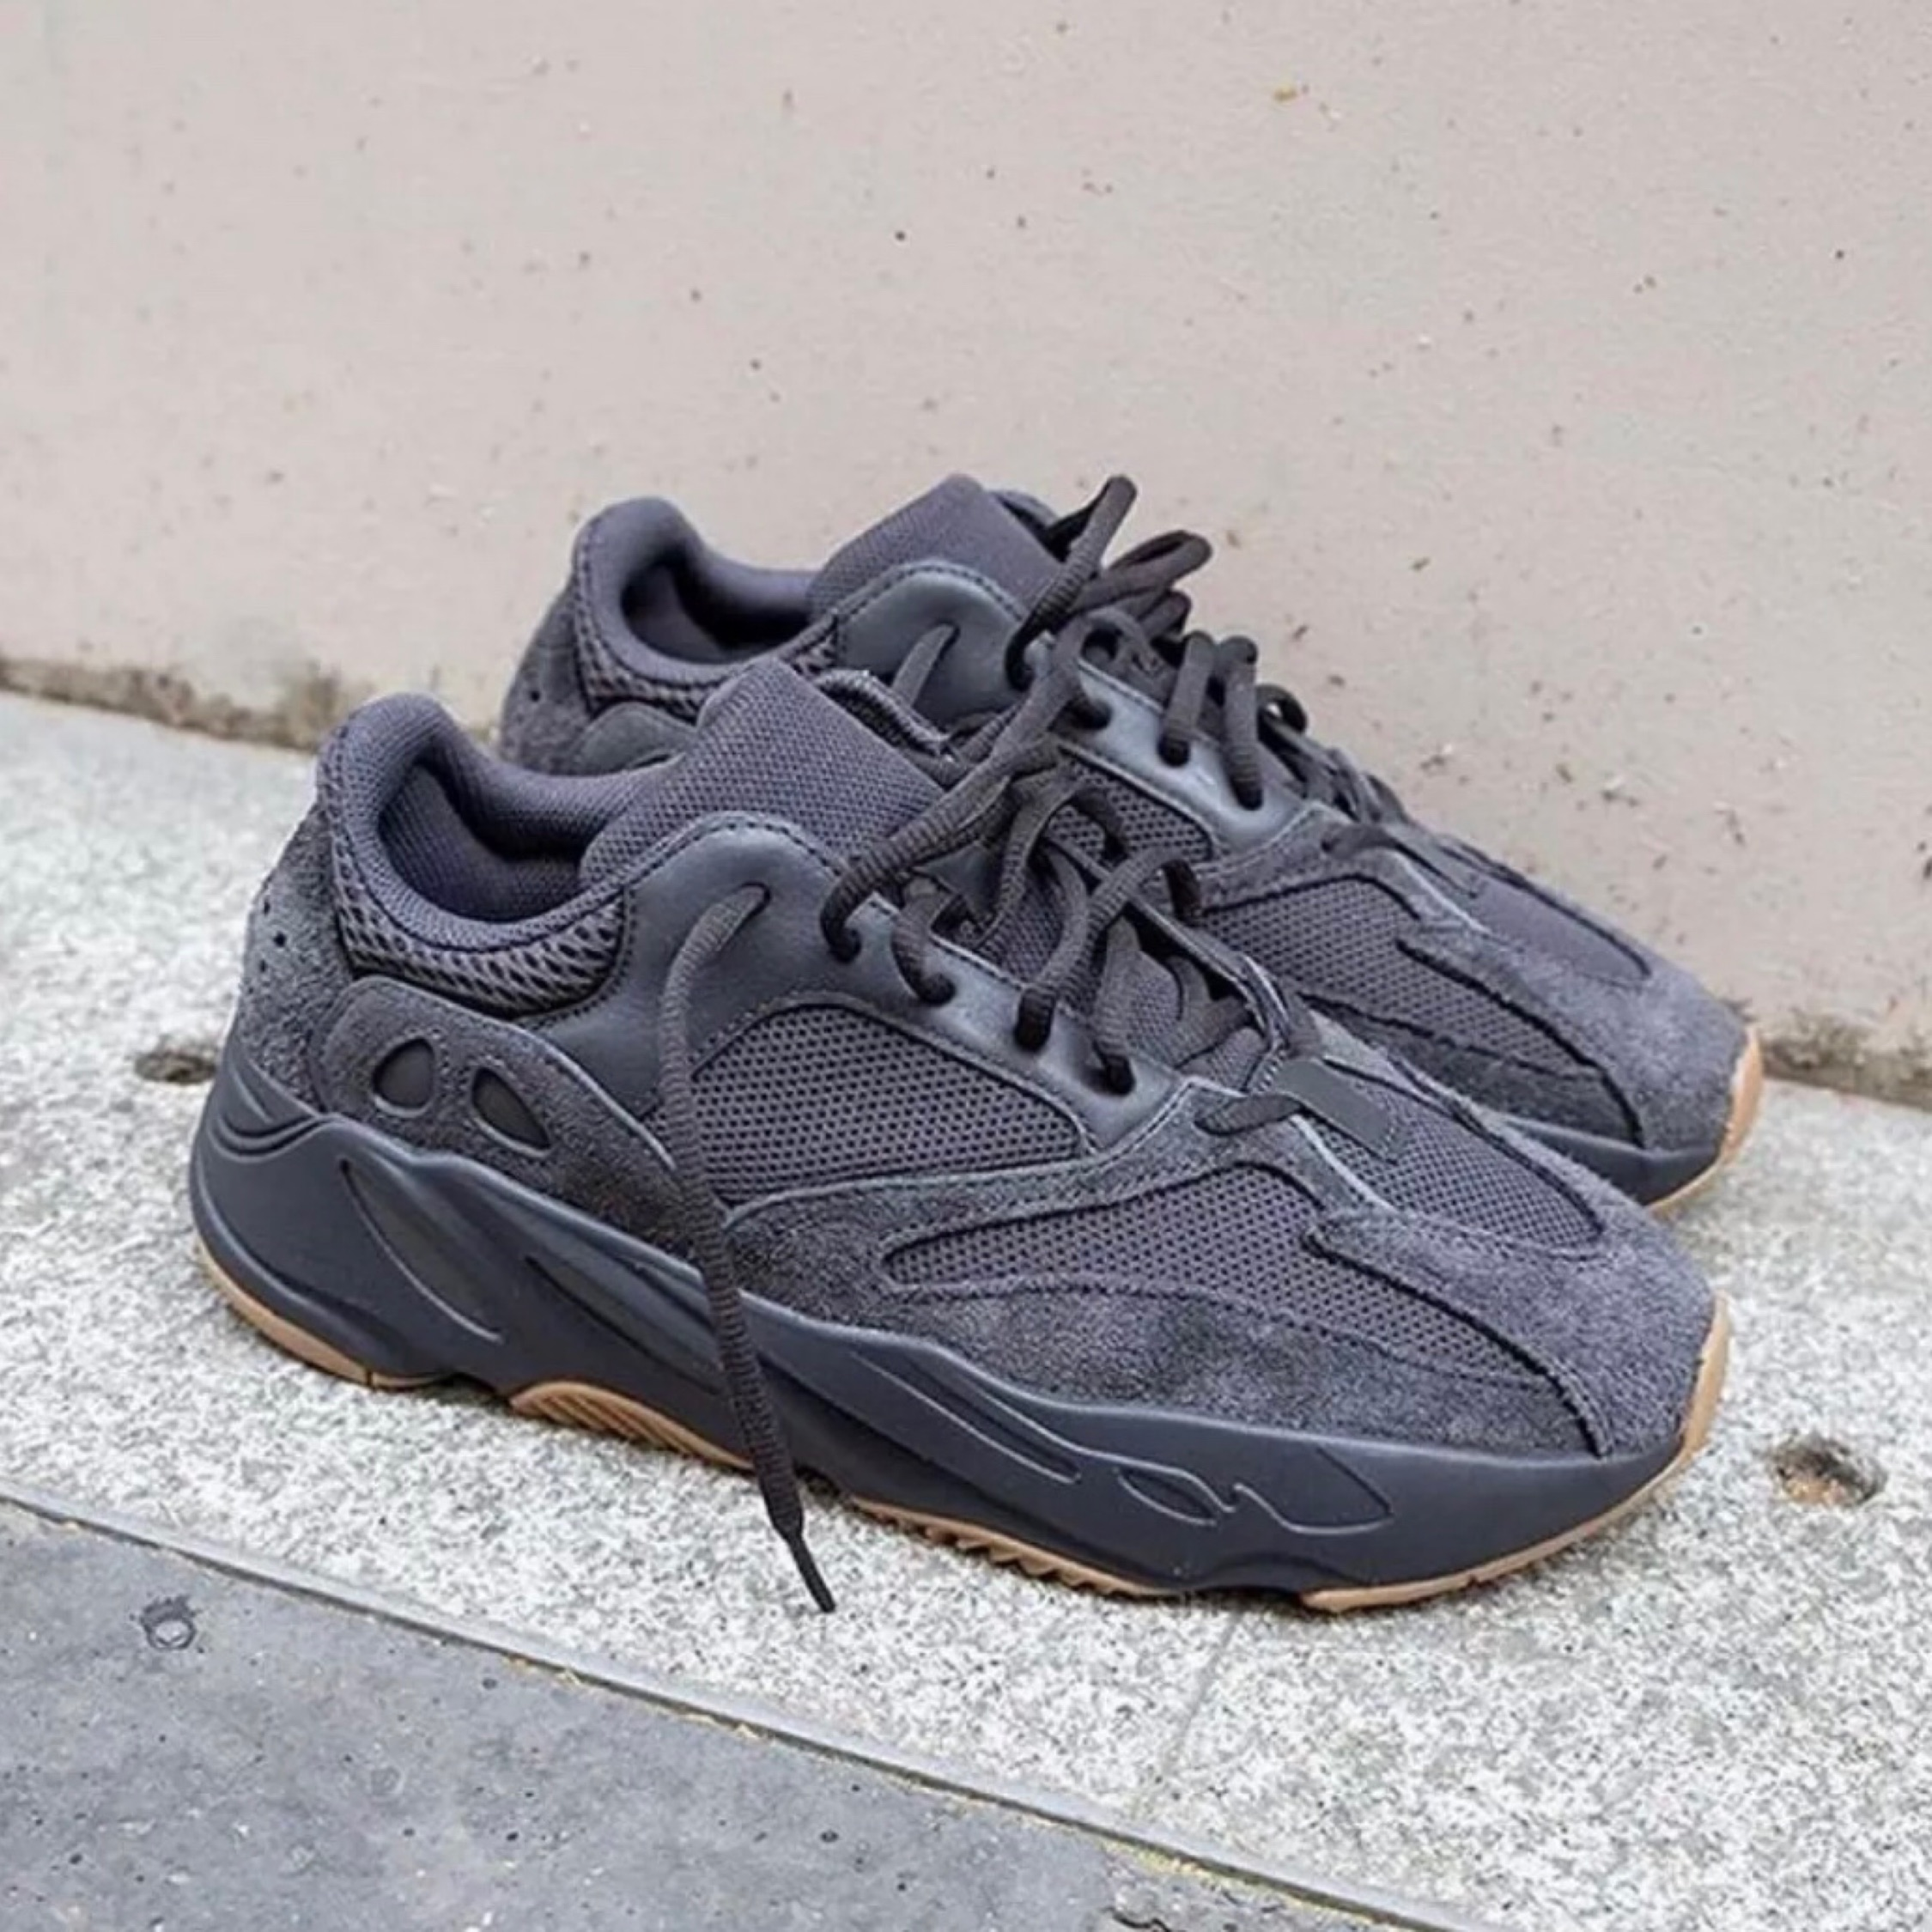 online store acf61 a6ab2 Adidas Yeezy Boost 700 Utility Black Uk 9.5 Fits 9